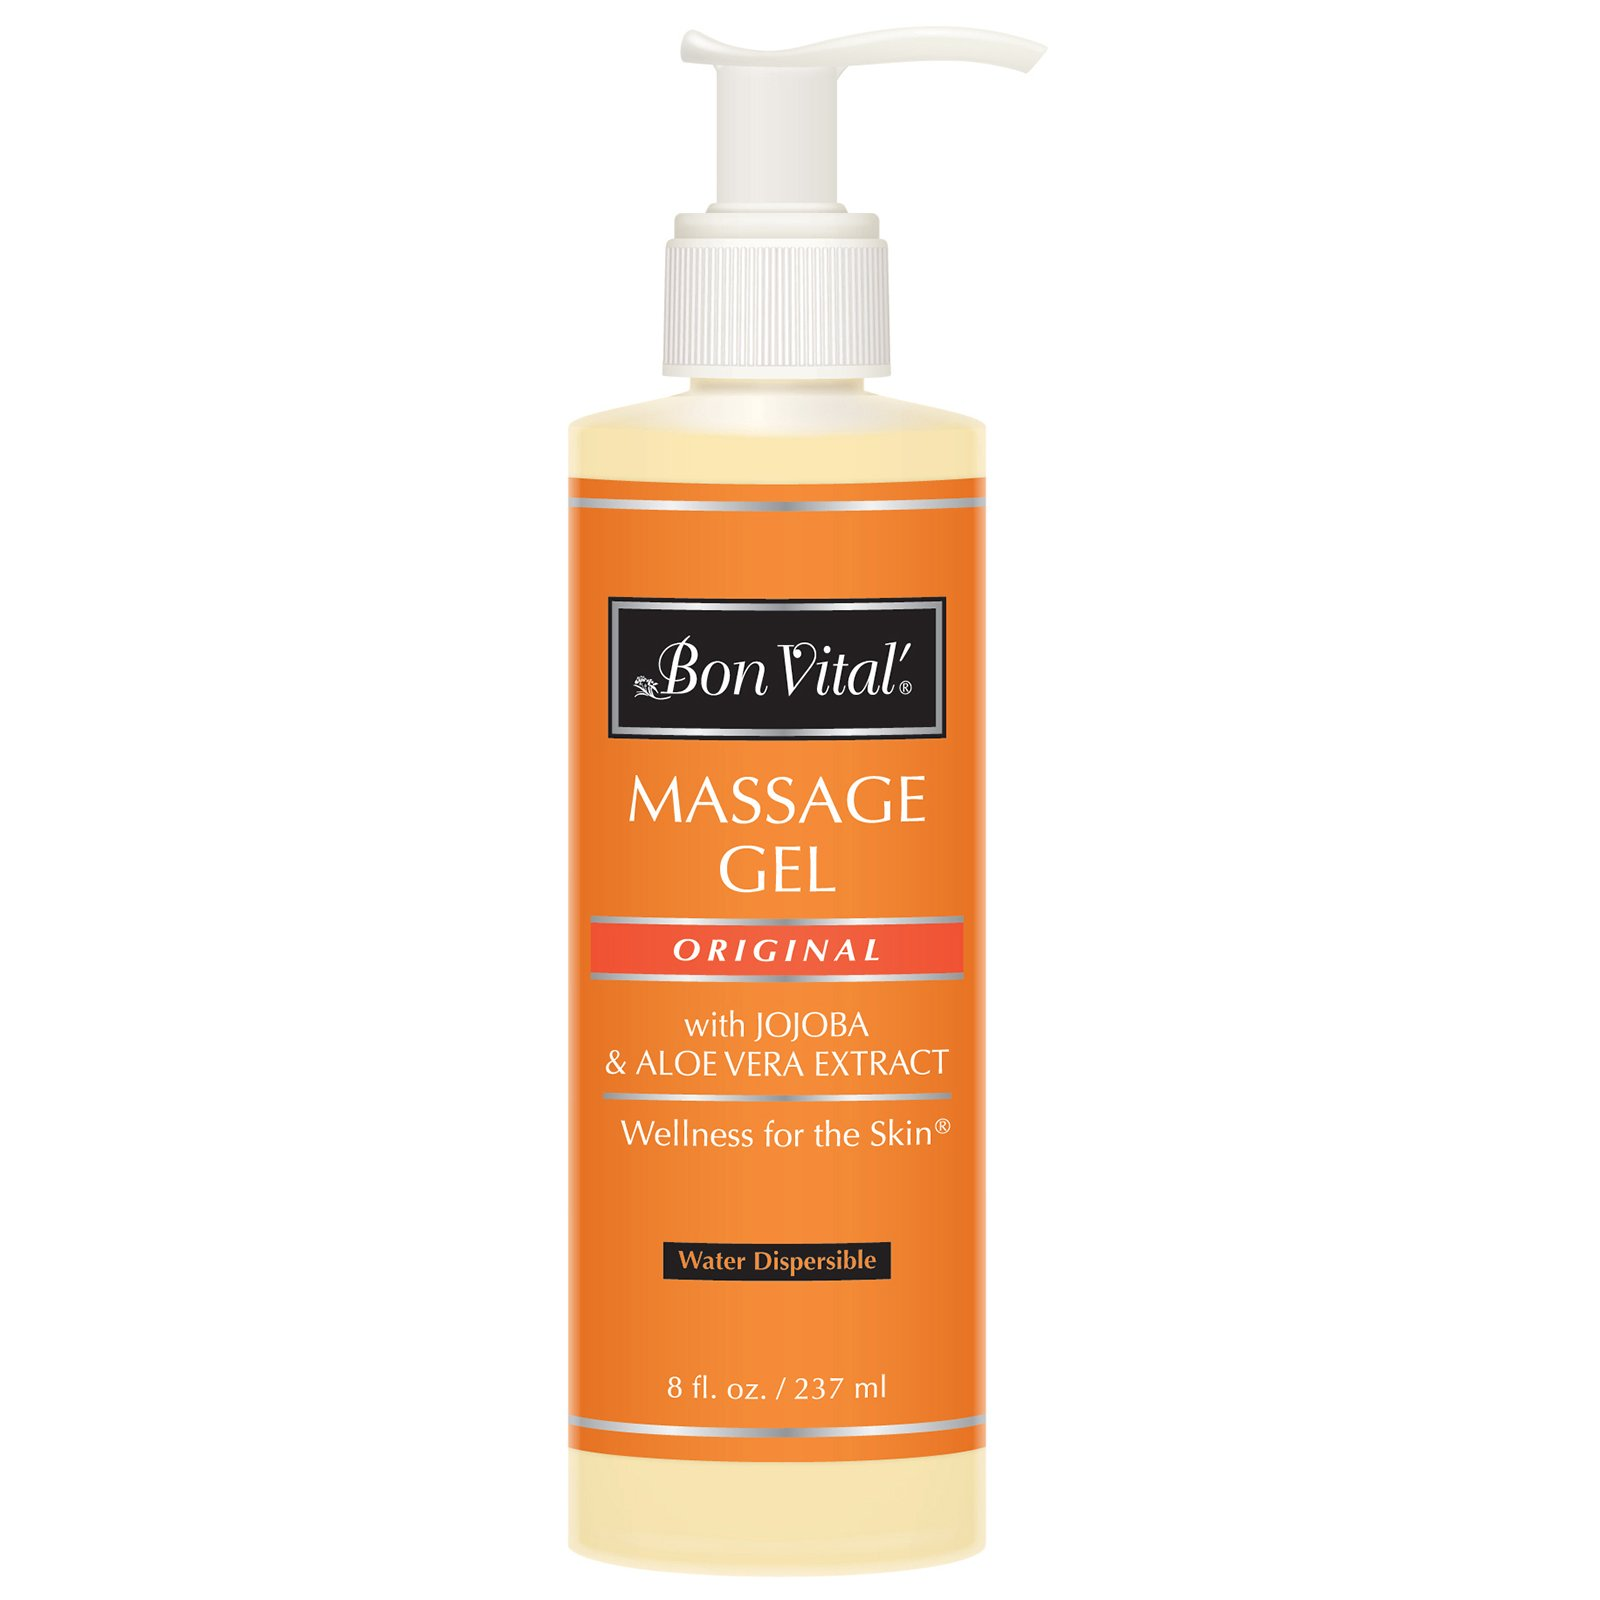 Bon Vital' Original Massage Gel for a Versatile Massage Foundation to Relax Sore Muscles and Repair Dry Skin, For Massage Therapists Who Want Superior Glide & Gentle Friction for Clients, 8 Oz Bottle